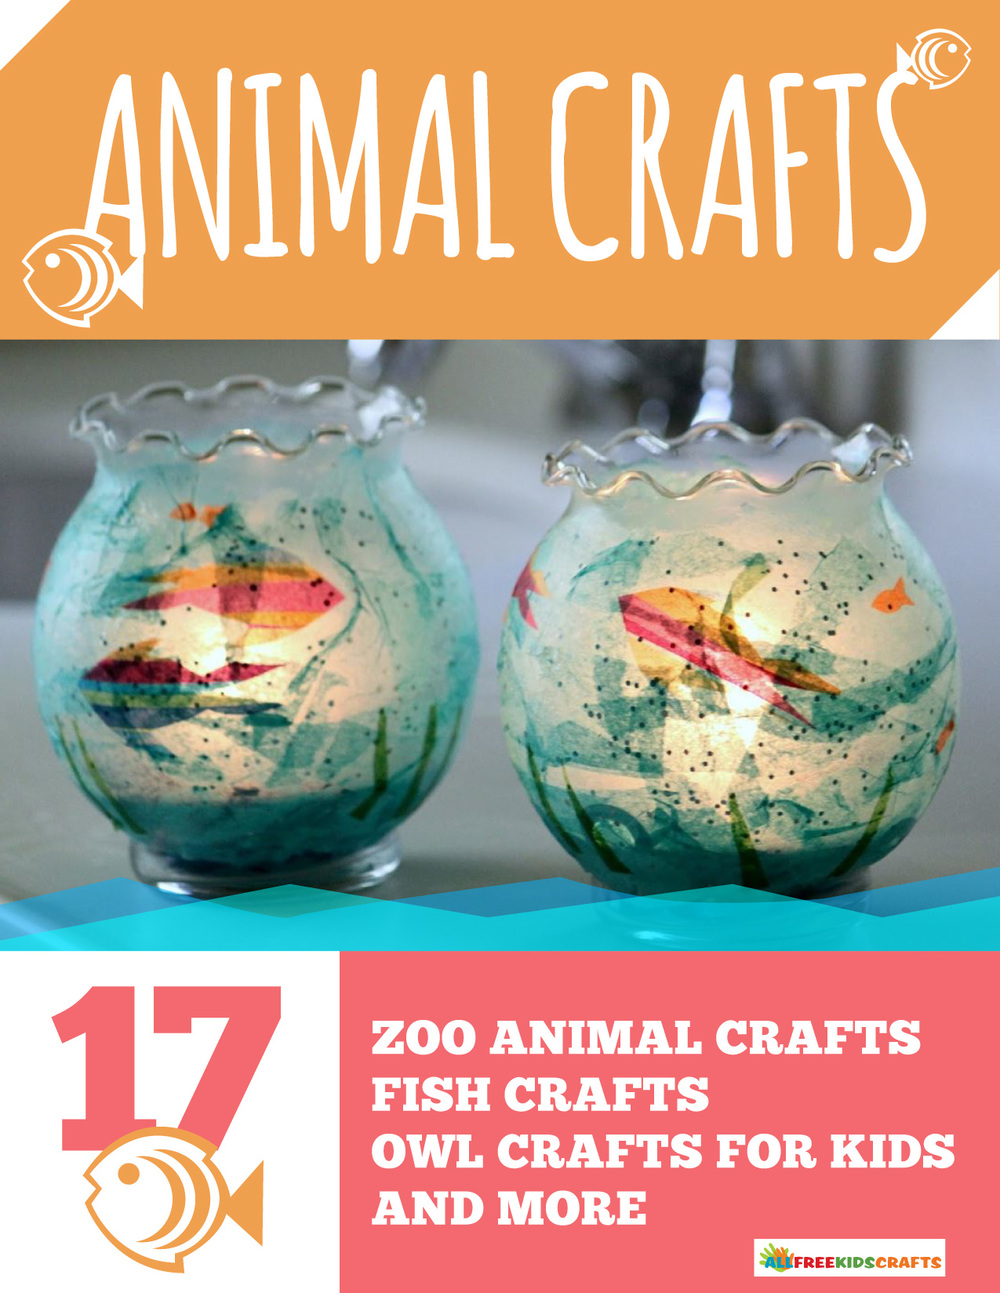 crafts for kids animal crafts zoo animal crafts fish crafts owl crafts